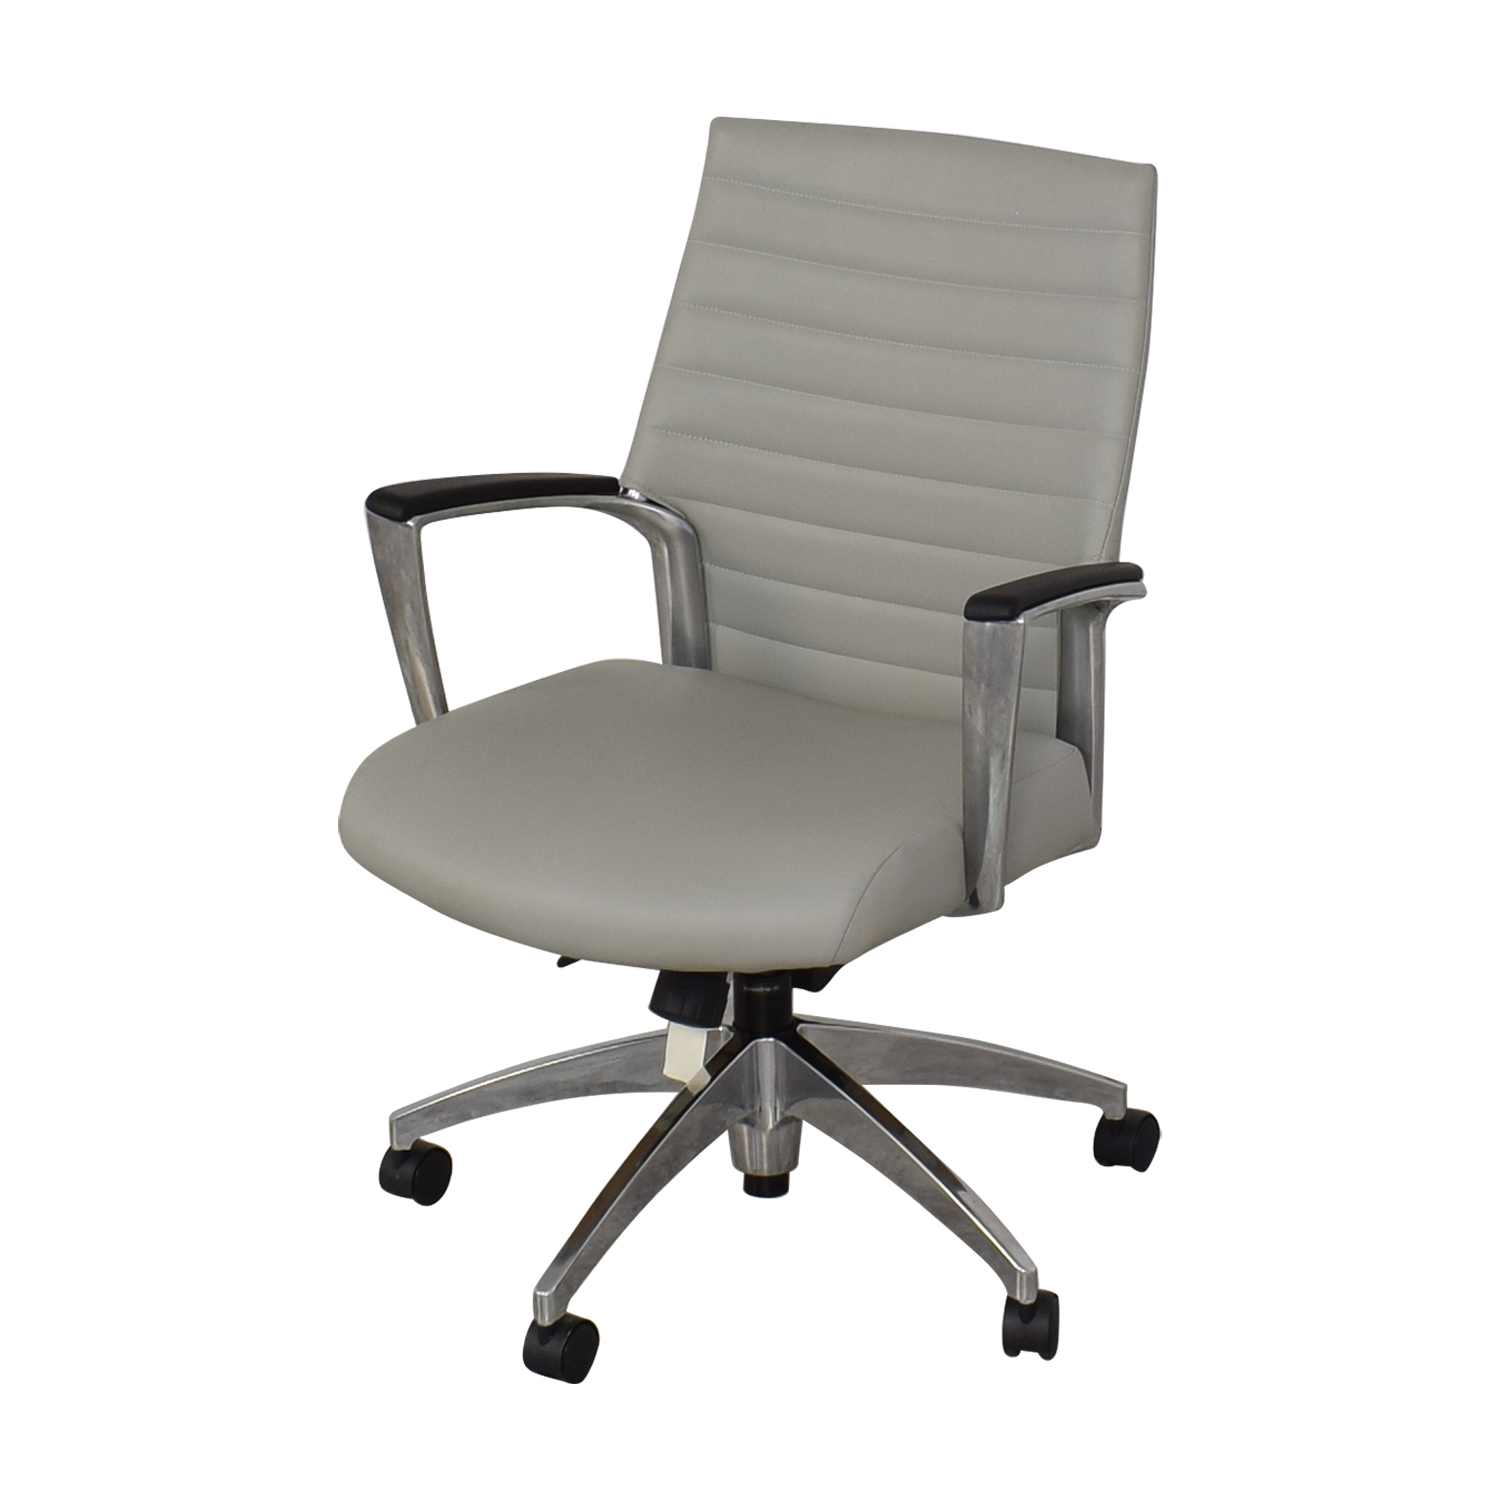 Global Global Accord Mid Back Tilter Chair Home Office Chairs